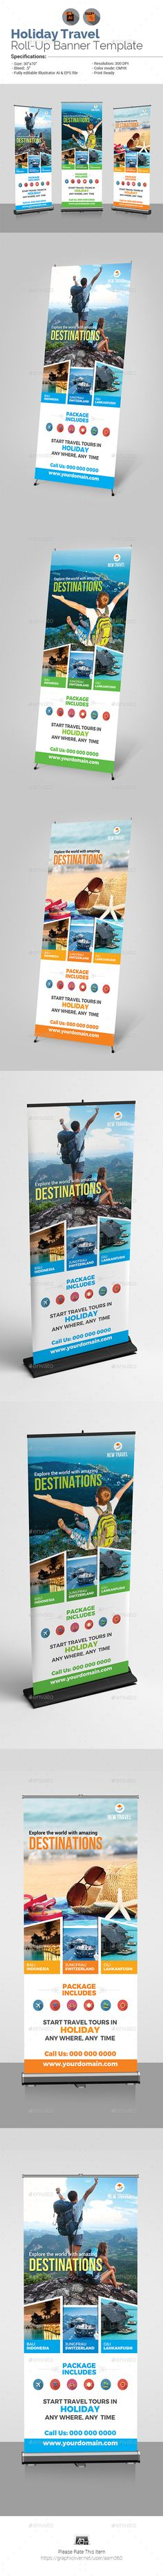 Holiday Travel Roll-Up Banner Template - #Signage Print Templates Download here: https://graphicriver.net/item/holiday-travel-rollup-banner-template/20084589?ref=alena994